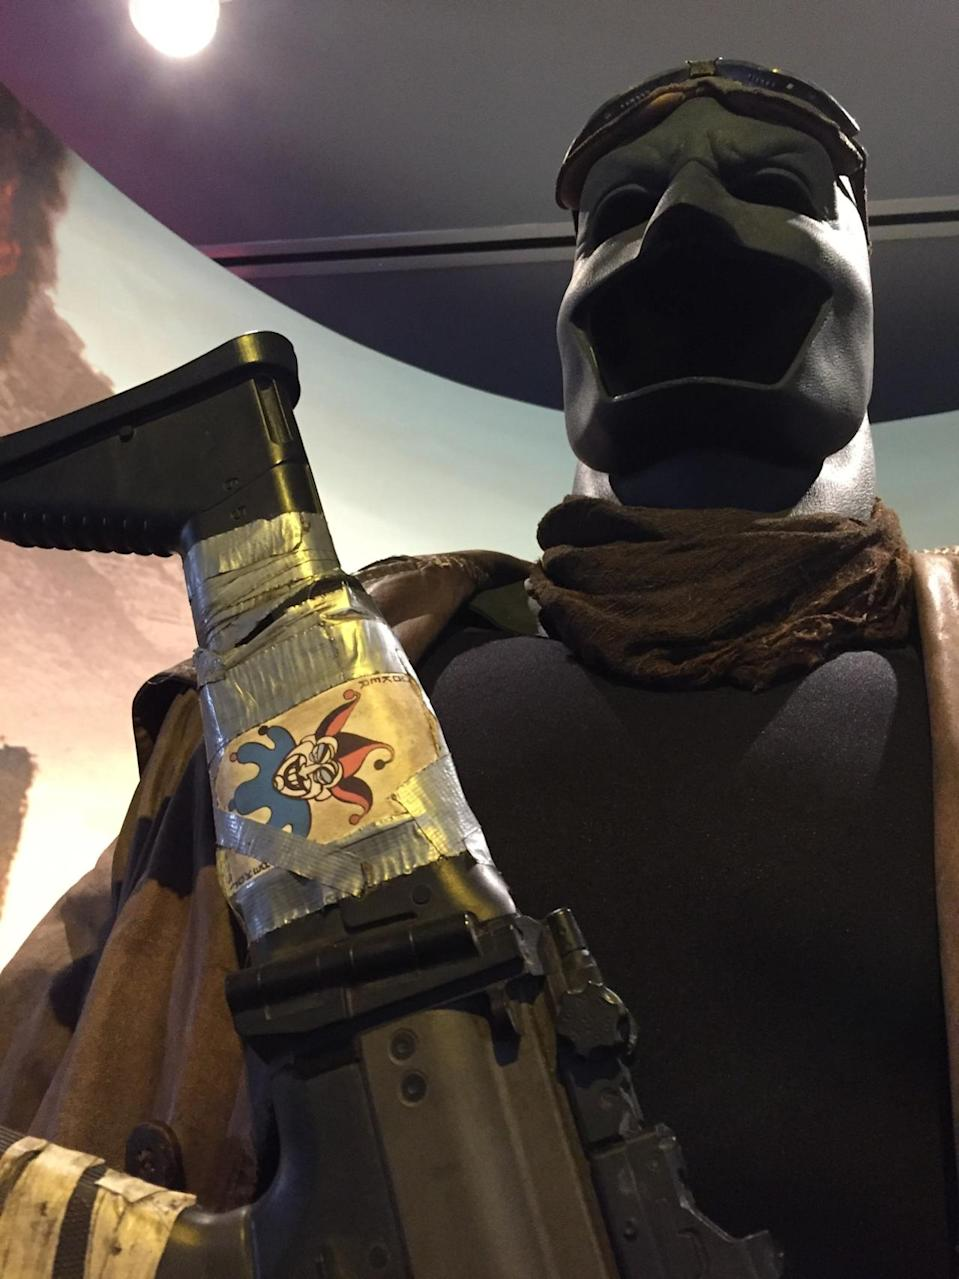 <p>This is a closeup of the outfit the Dark Knight was wearing in his vision of alien invaders; note the playing card on his machine gun.</p>